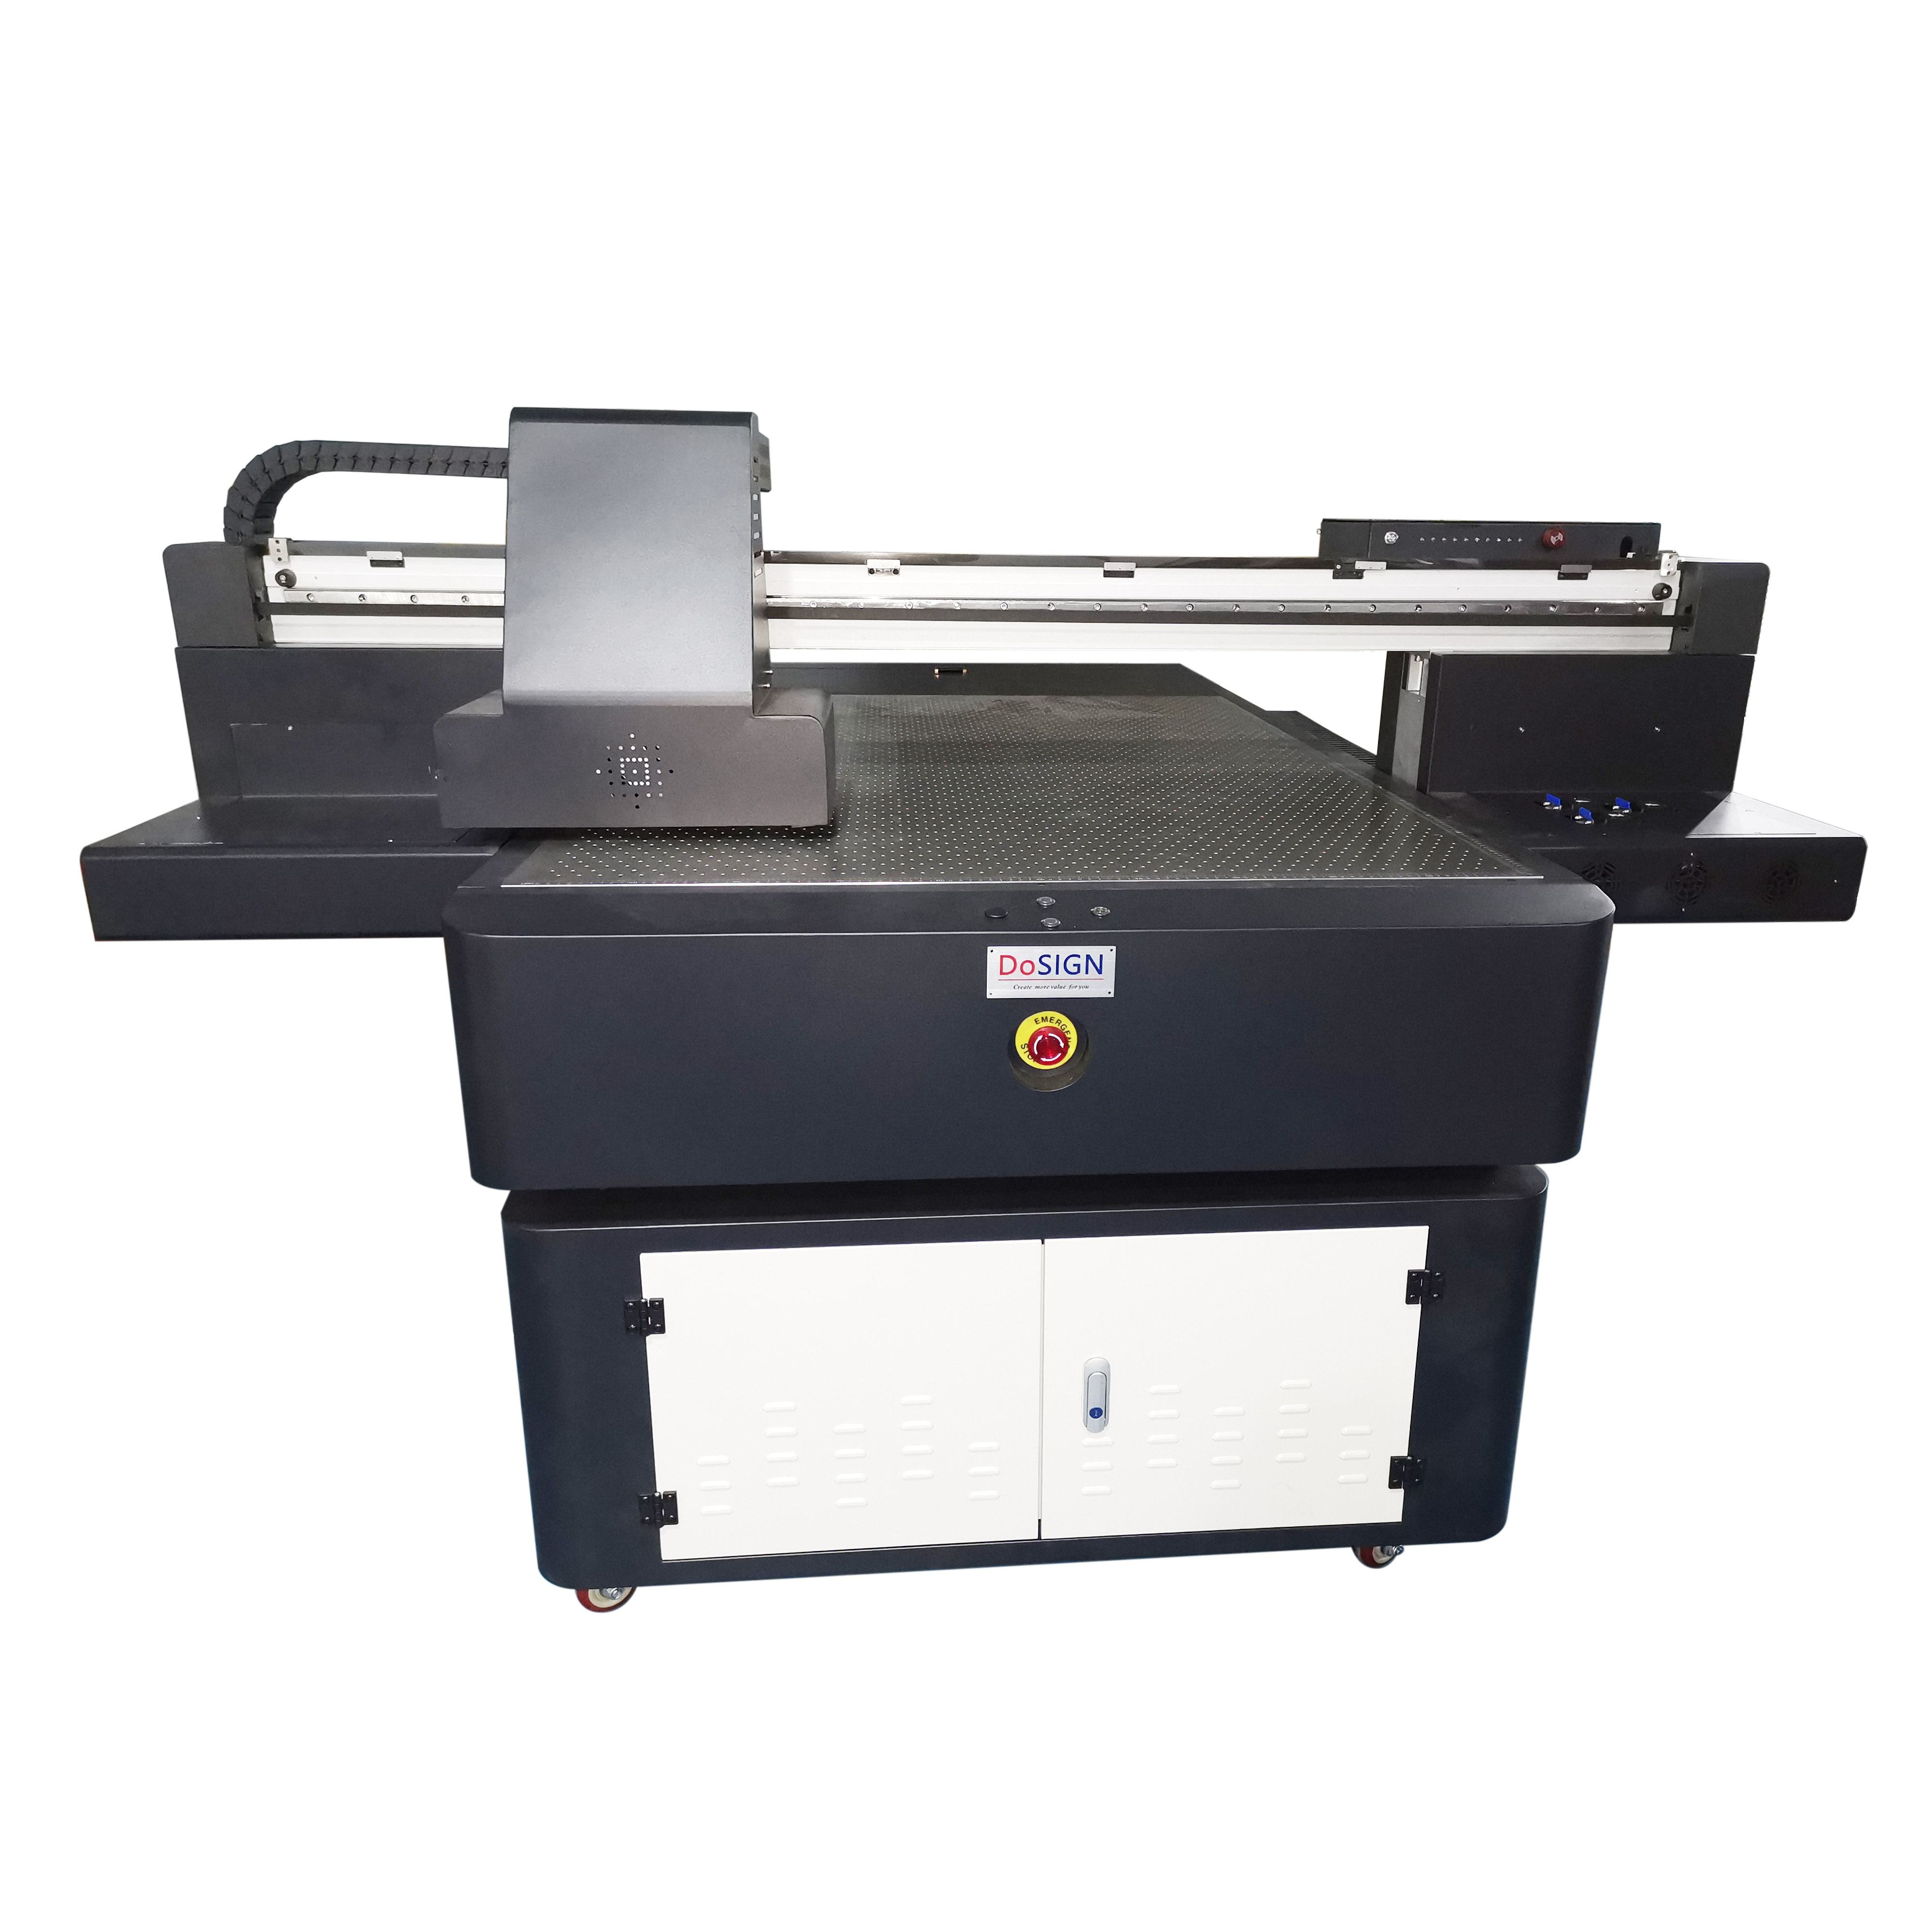 2020 Hot sale digital glass ceramic tiles background board printer uv flatbed printer